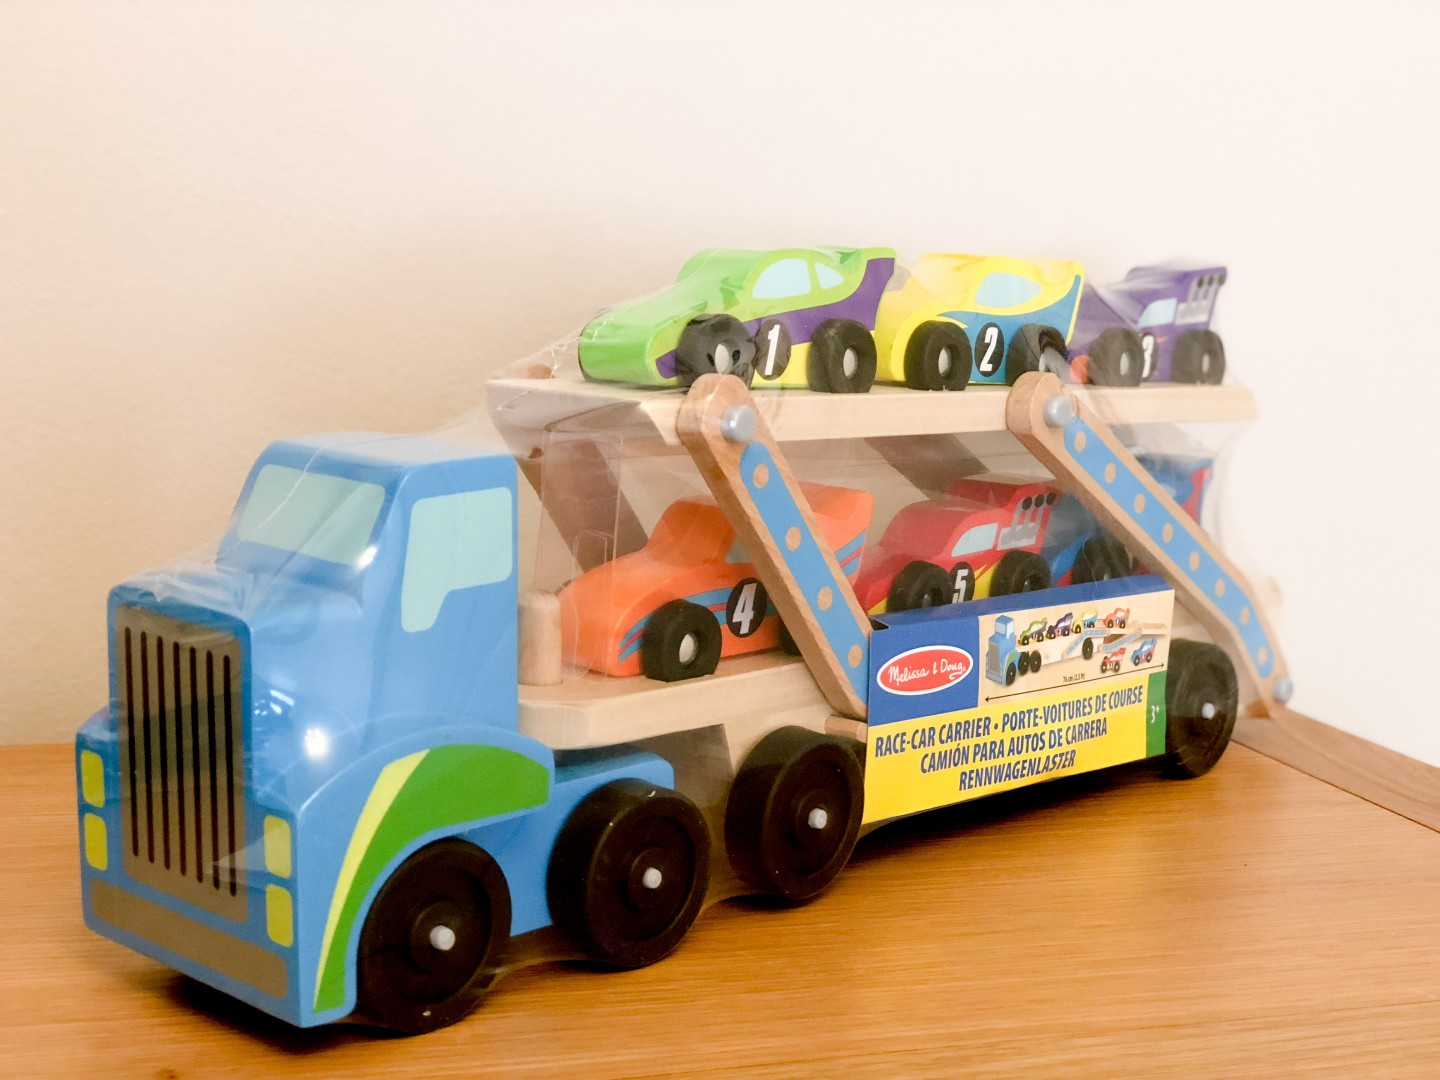 tots and tykes hamper social network solutions explore new brands melissa and doug race car carrier wooden toys piccola